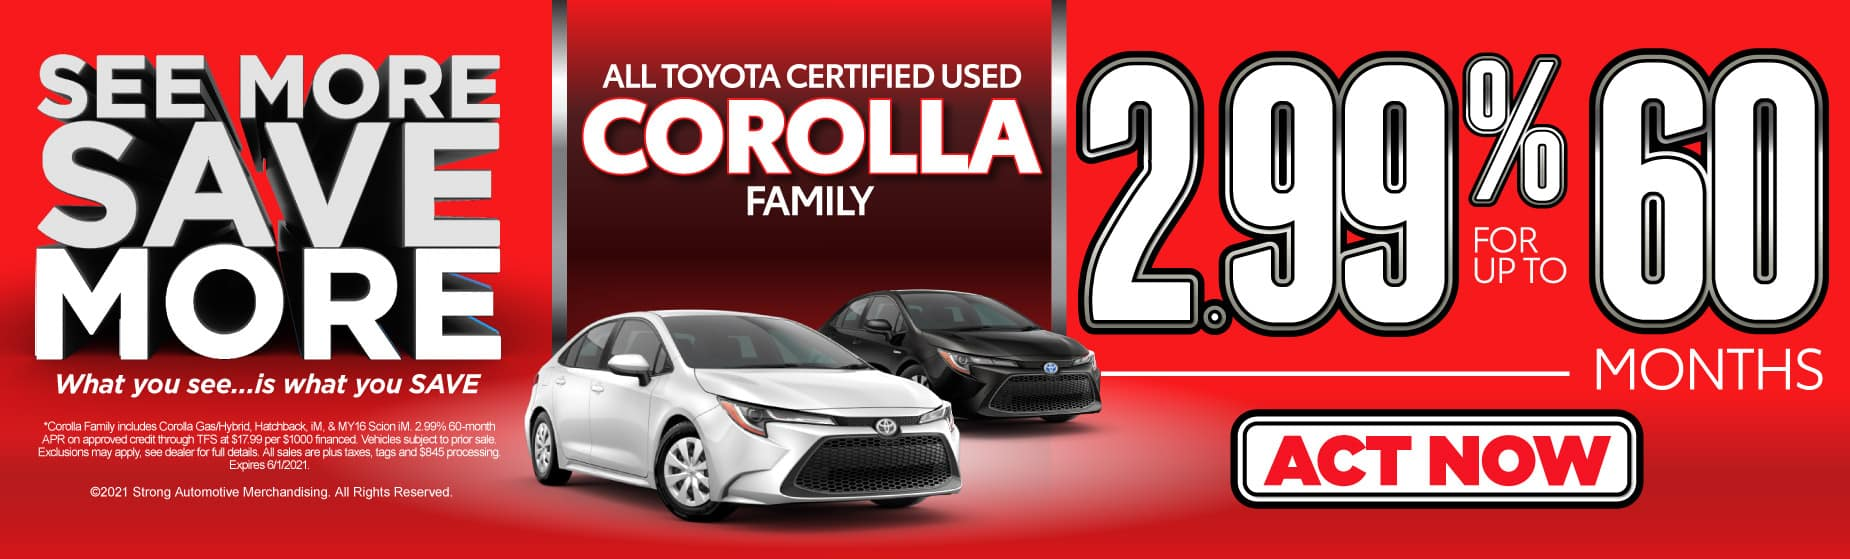 Certified Used Corolla | 2.99% for up to 60 months | Act Now